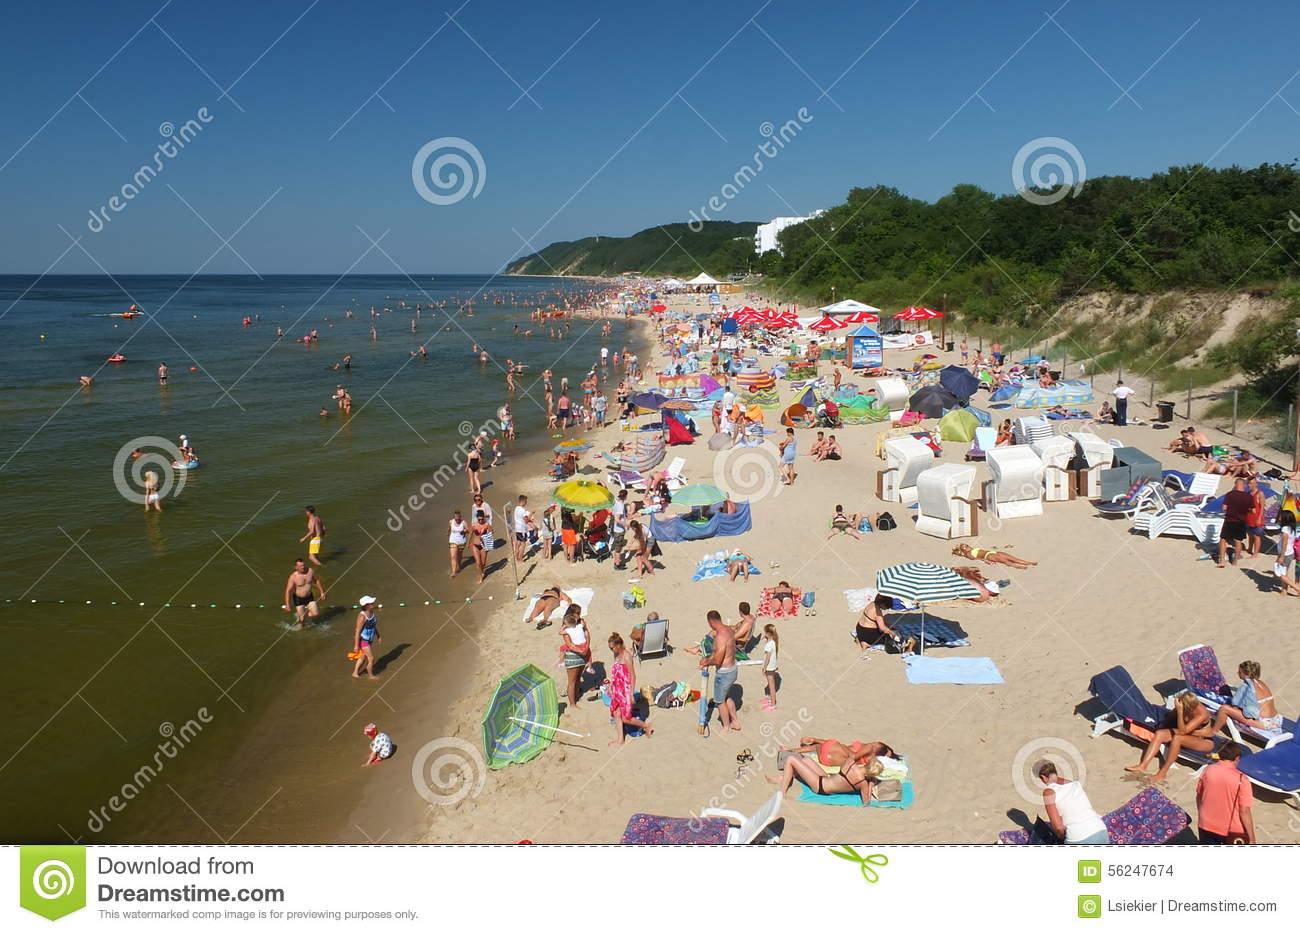 Miedzyzdroje Stock Photos, Images, & Pictures.